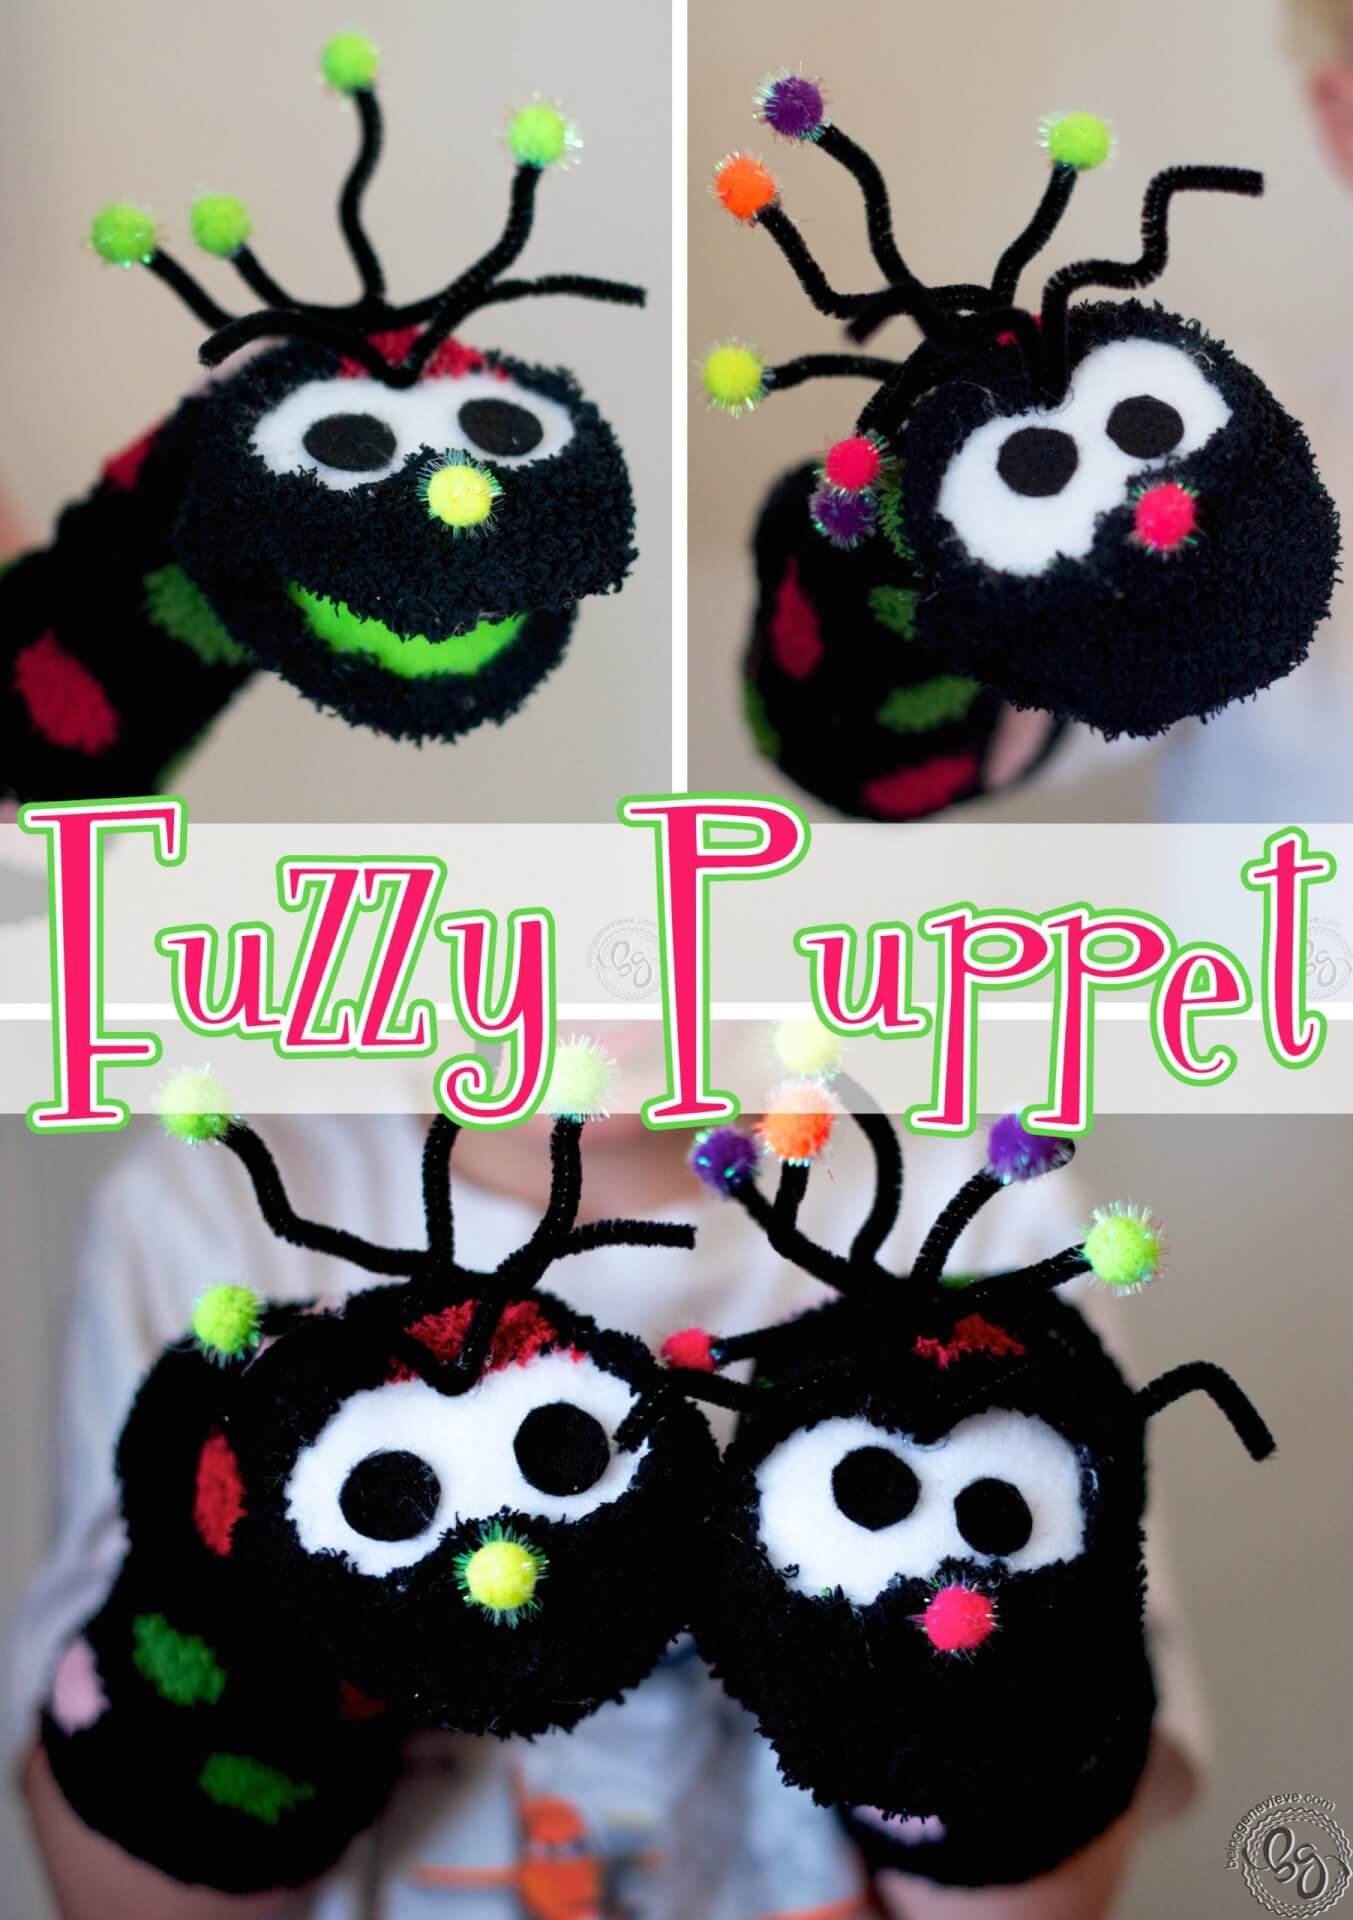 The Fuzzy Puppet